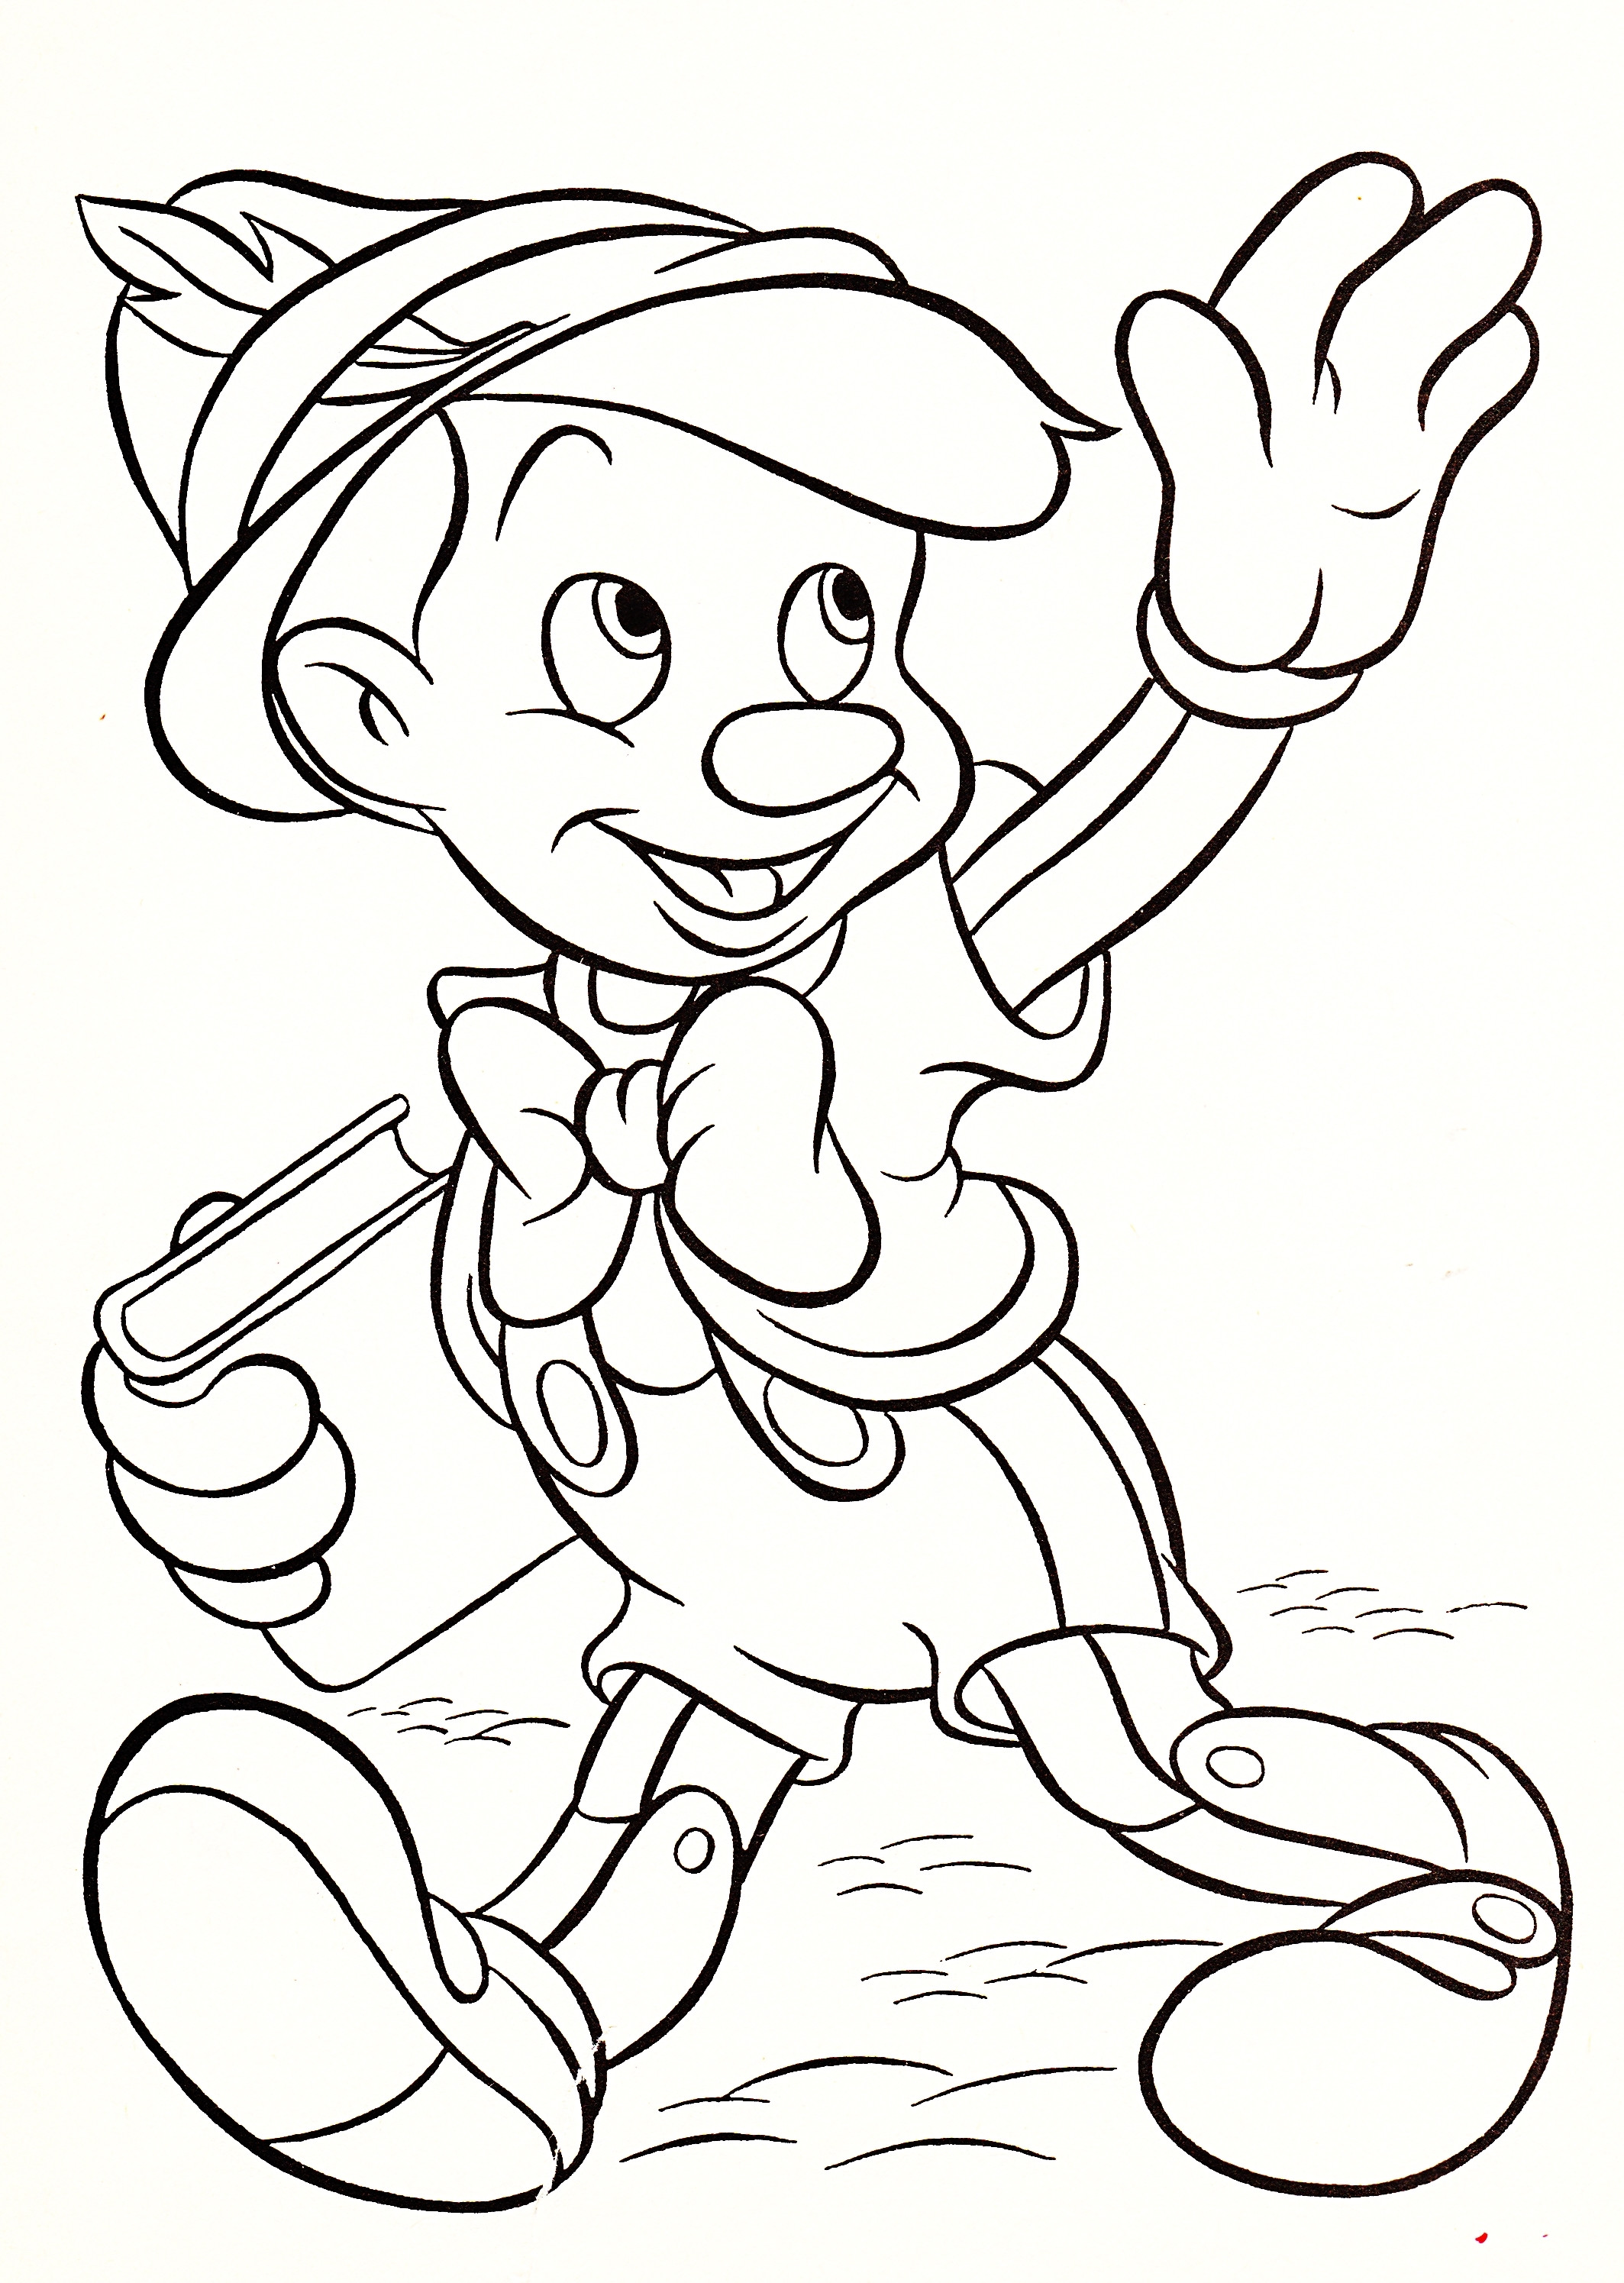 Disney Coloring Books  Disney Characters Coloring Pages coloringsuite